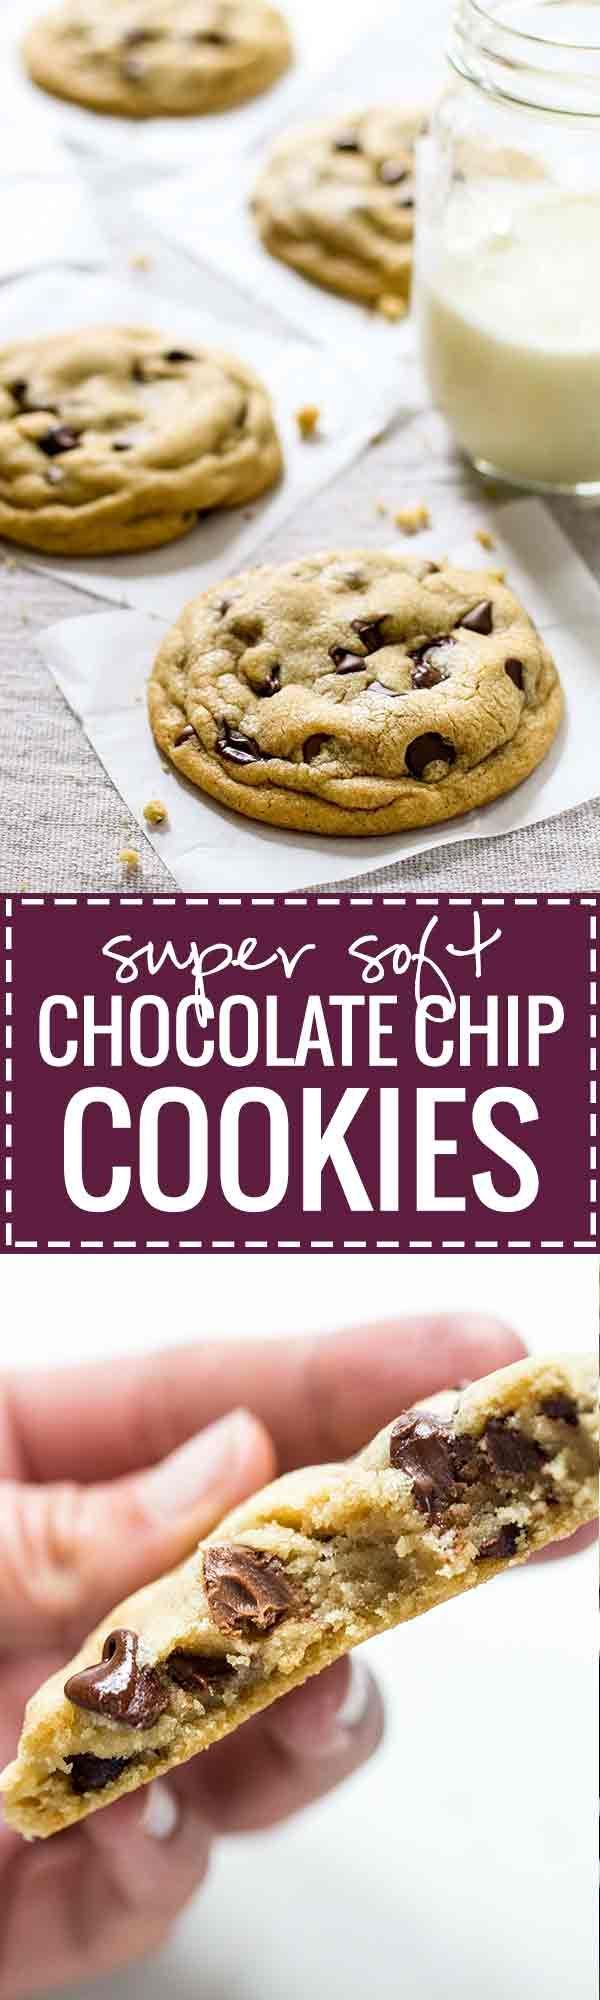 The Best Soft Chocolate Chip Cookies Recipe Chocolate chips, Chip cookies and Cookies